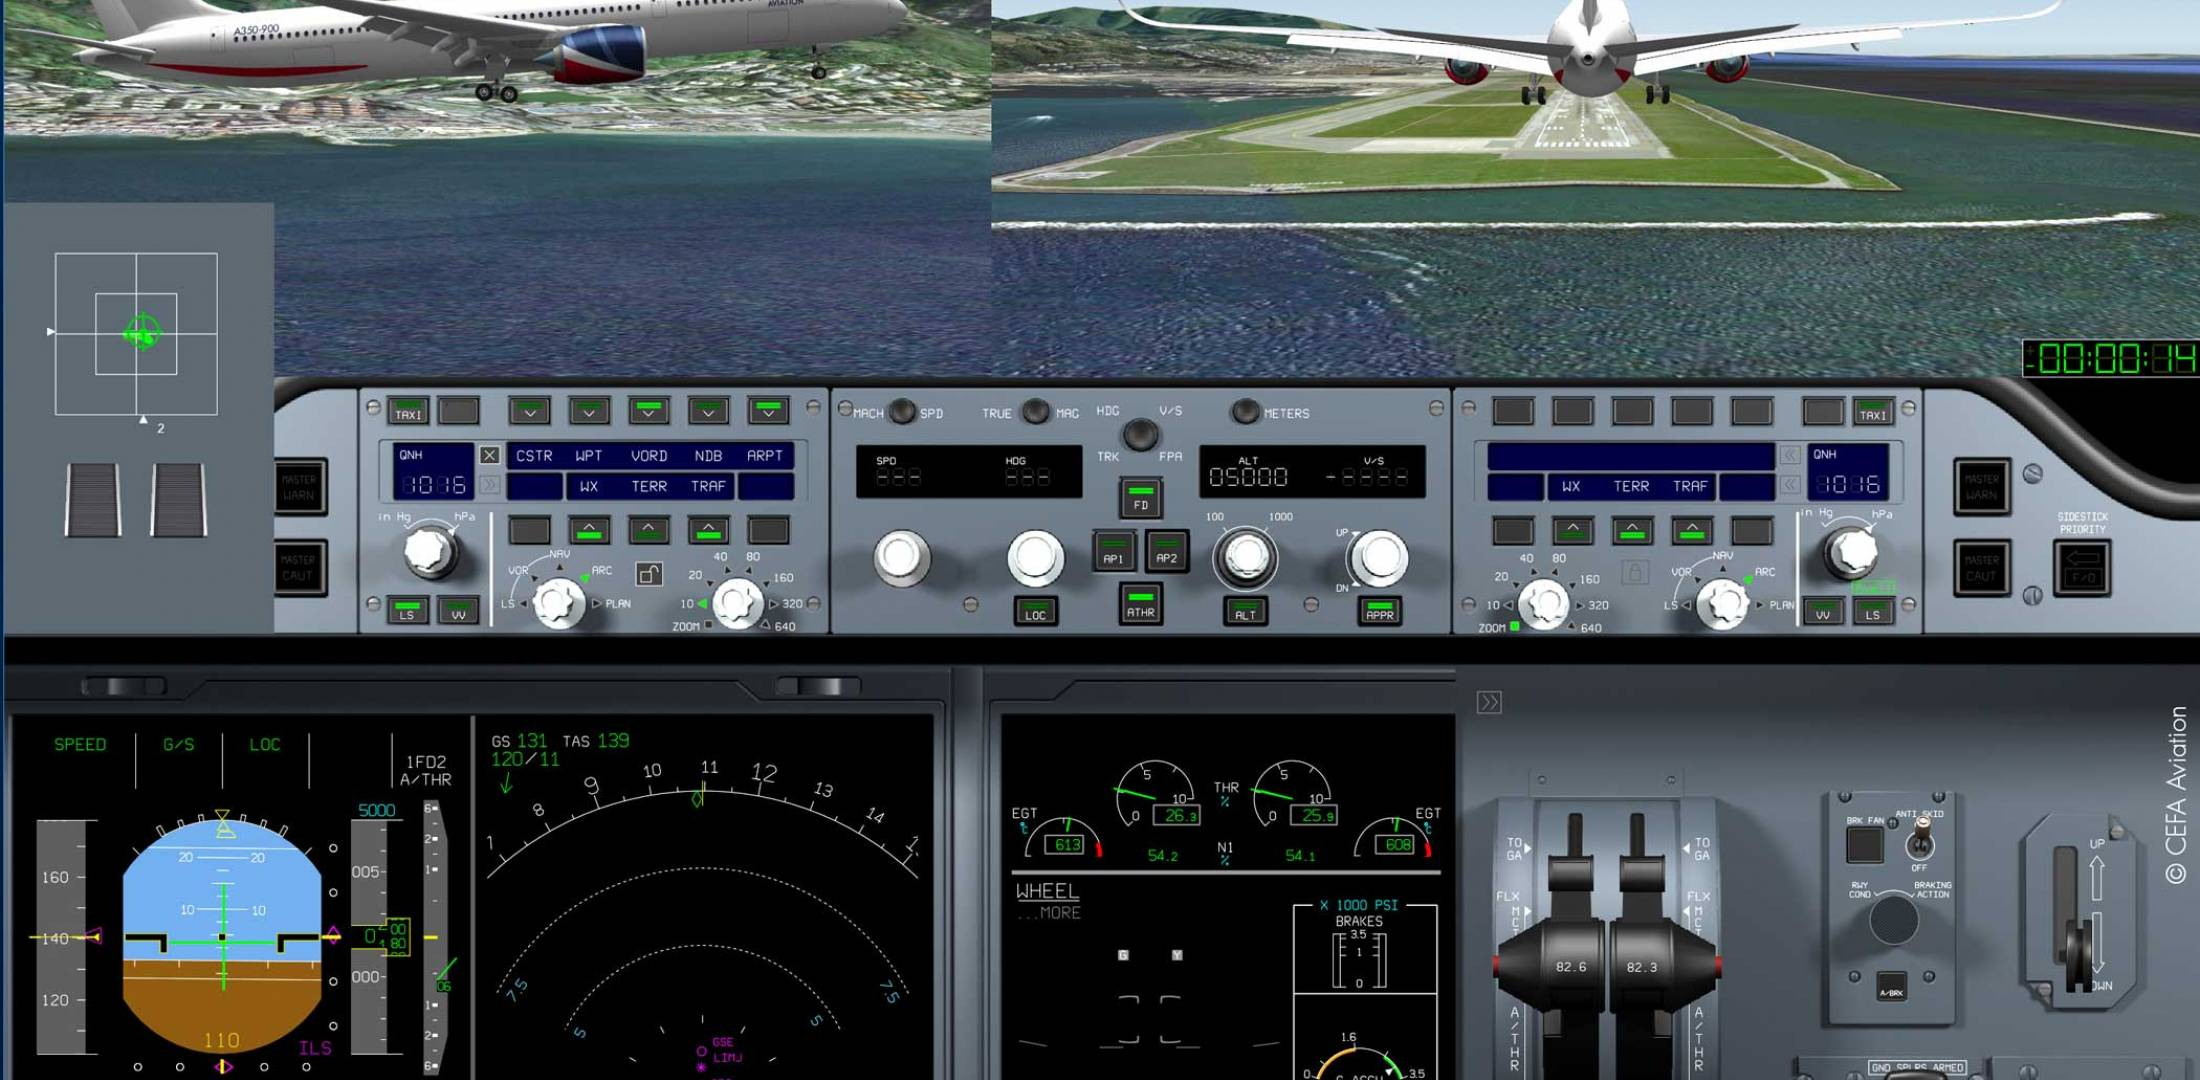 CEFA AMS (Aviation Mobile Services) on the ipad